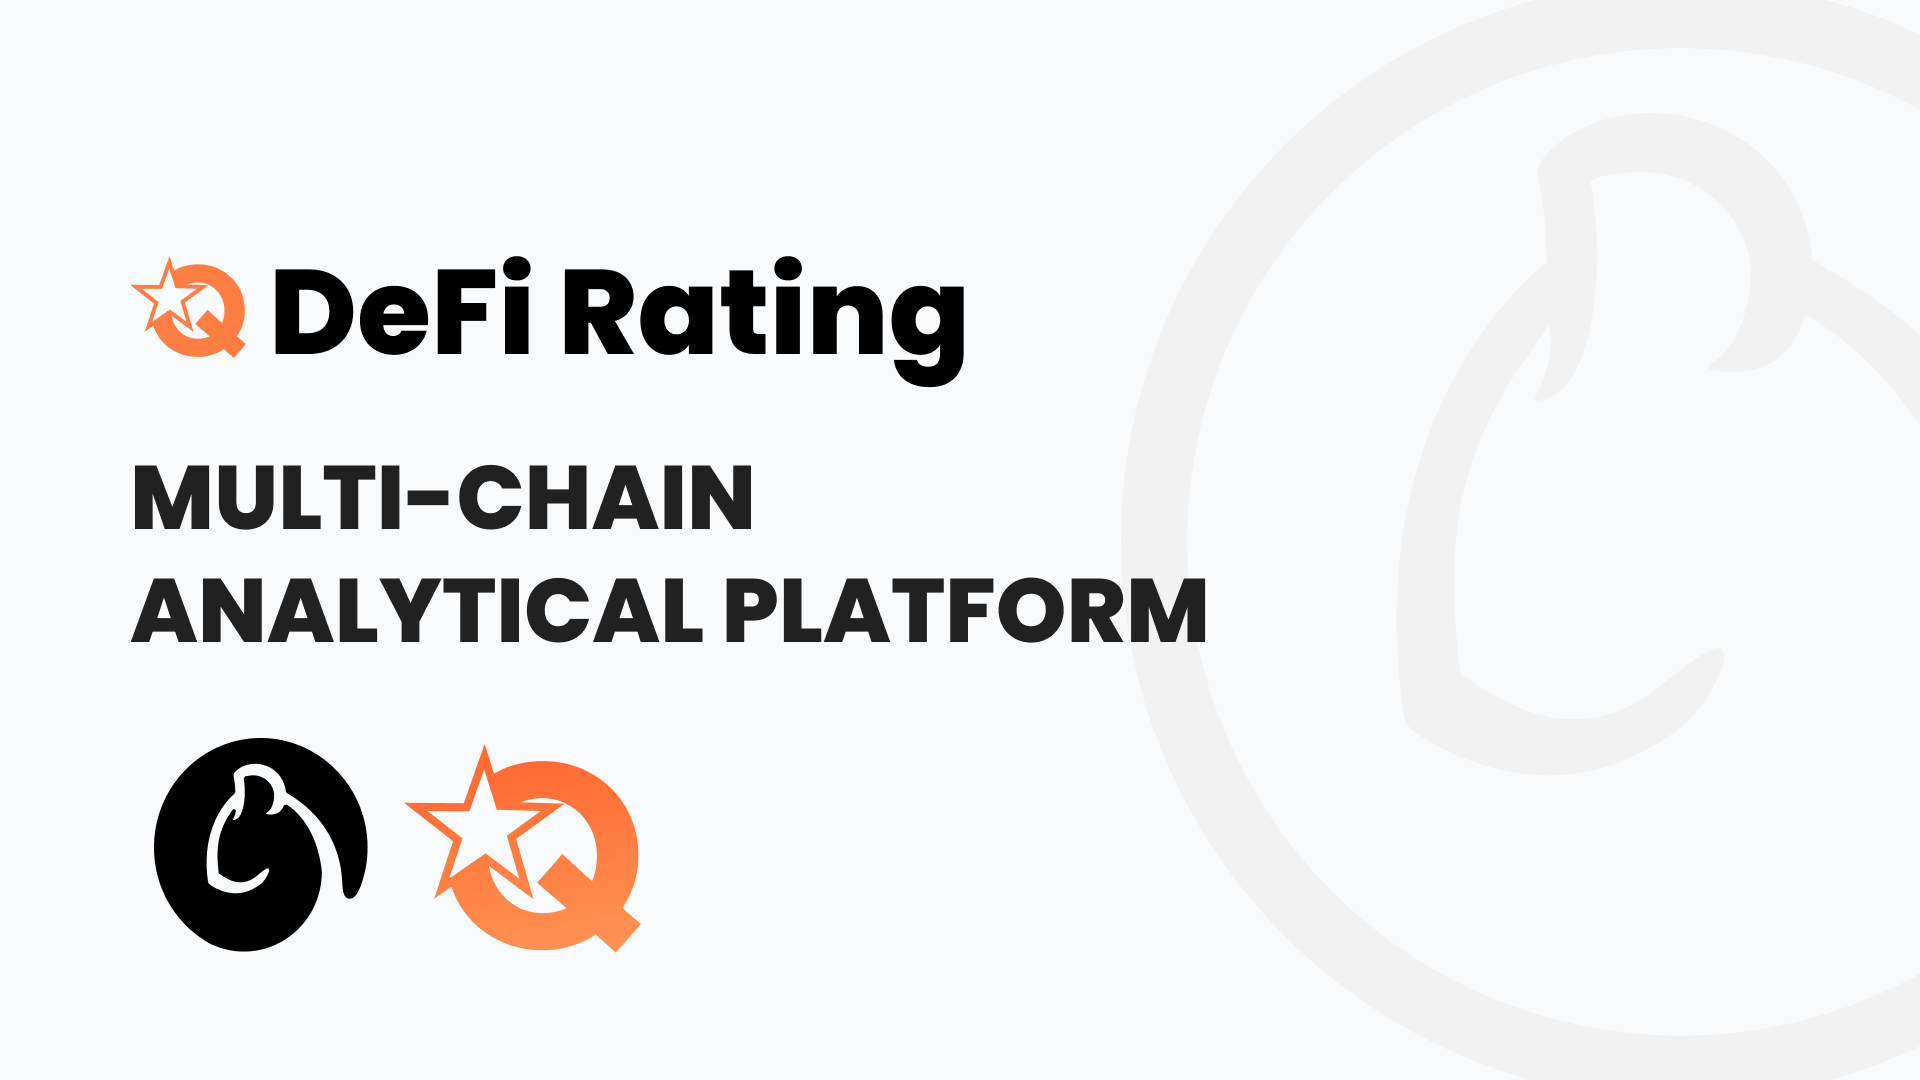 Q DAO DeFi Rating